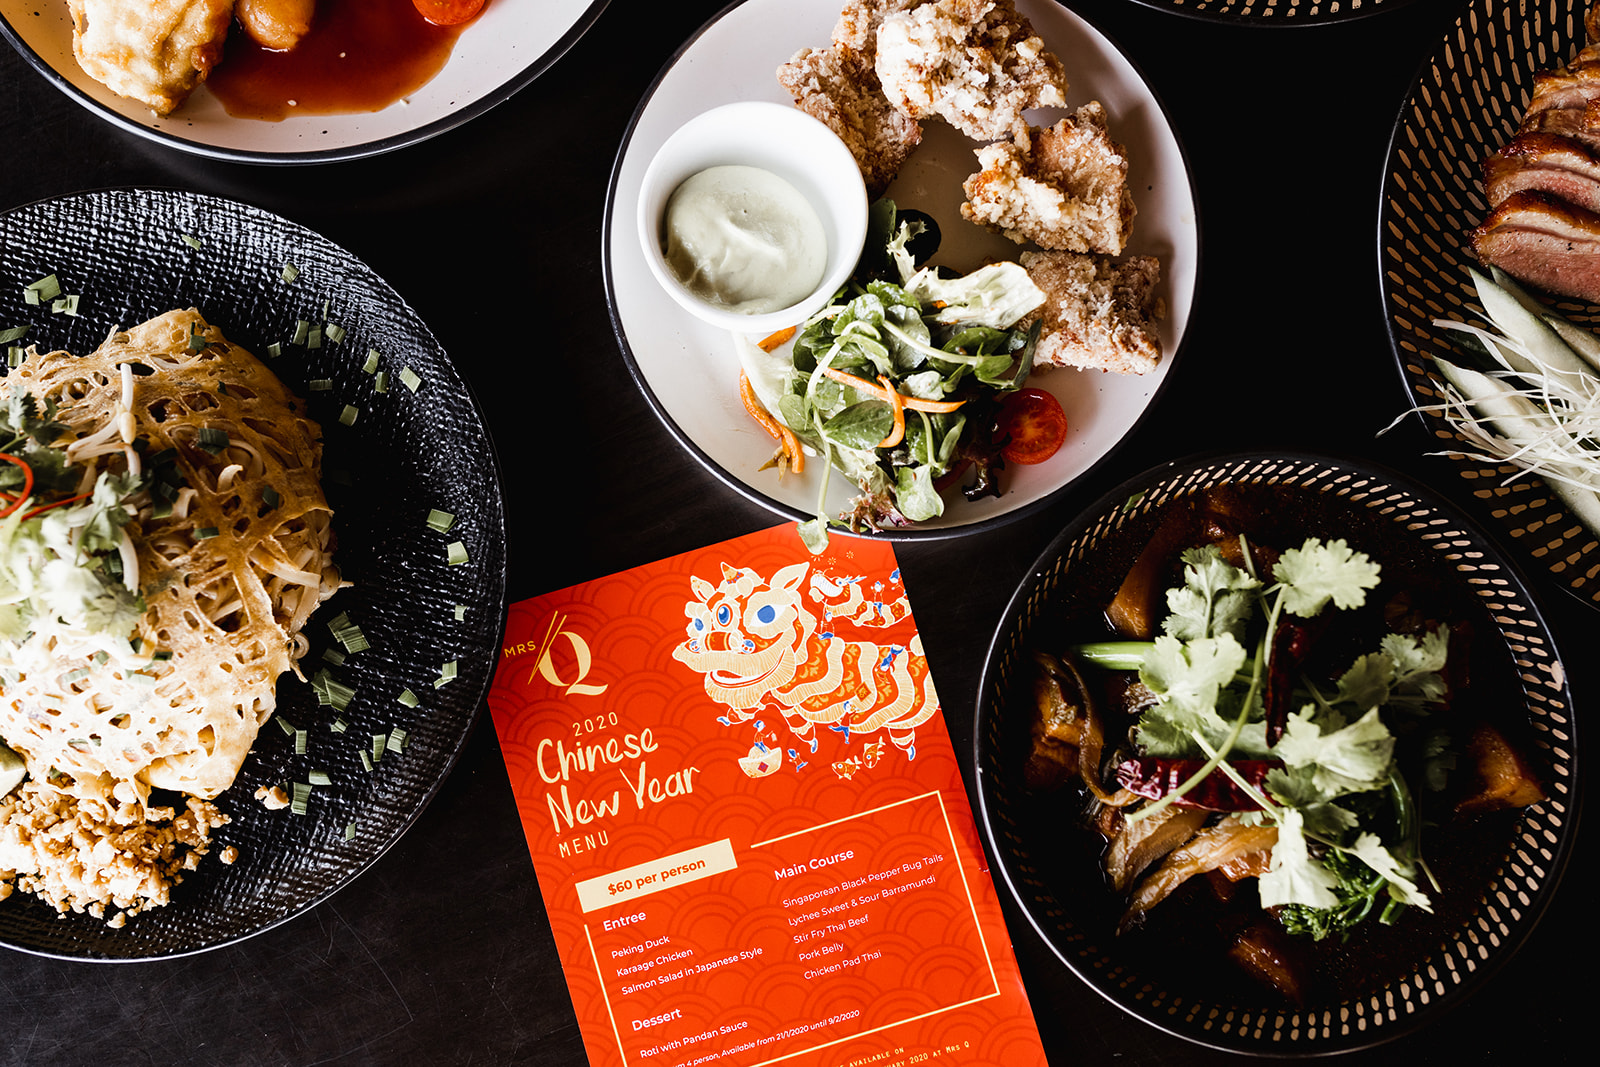 WIN a delicious dinner atMrs Q to celebrate their Chinese New Year menu for you and 3 friends